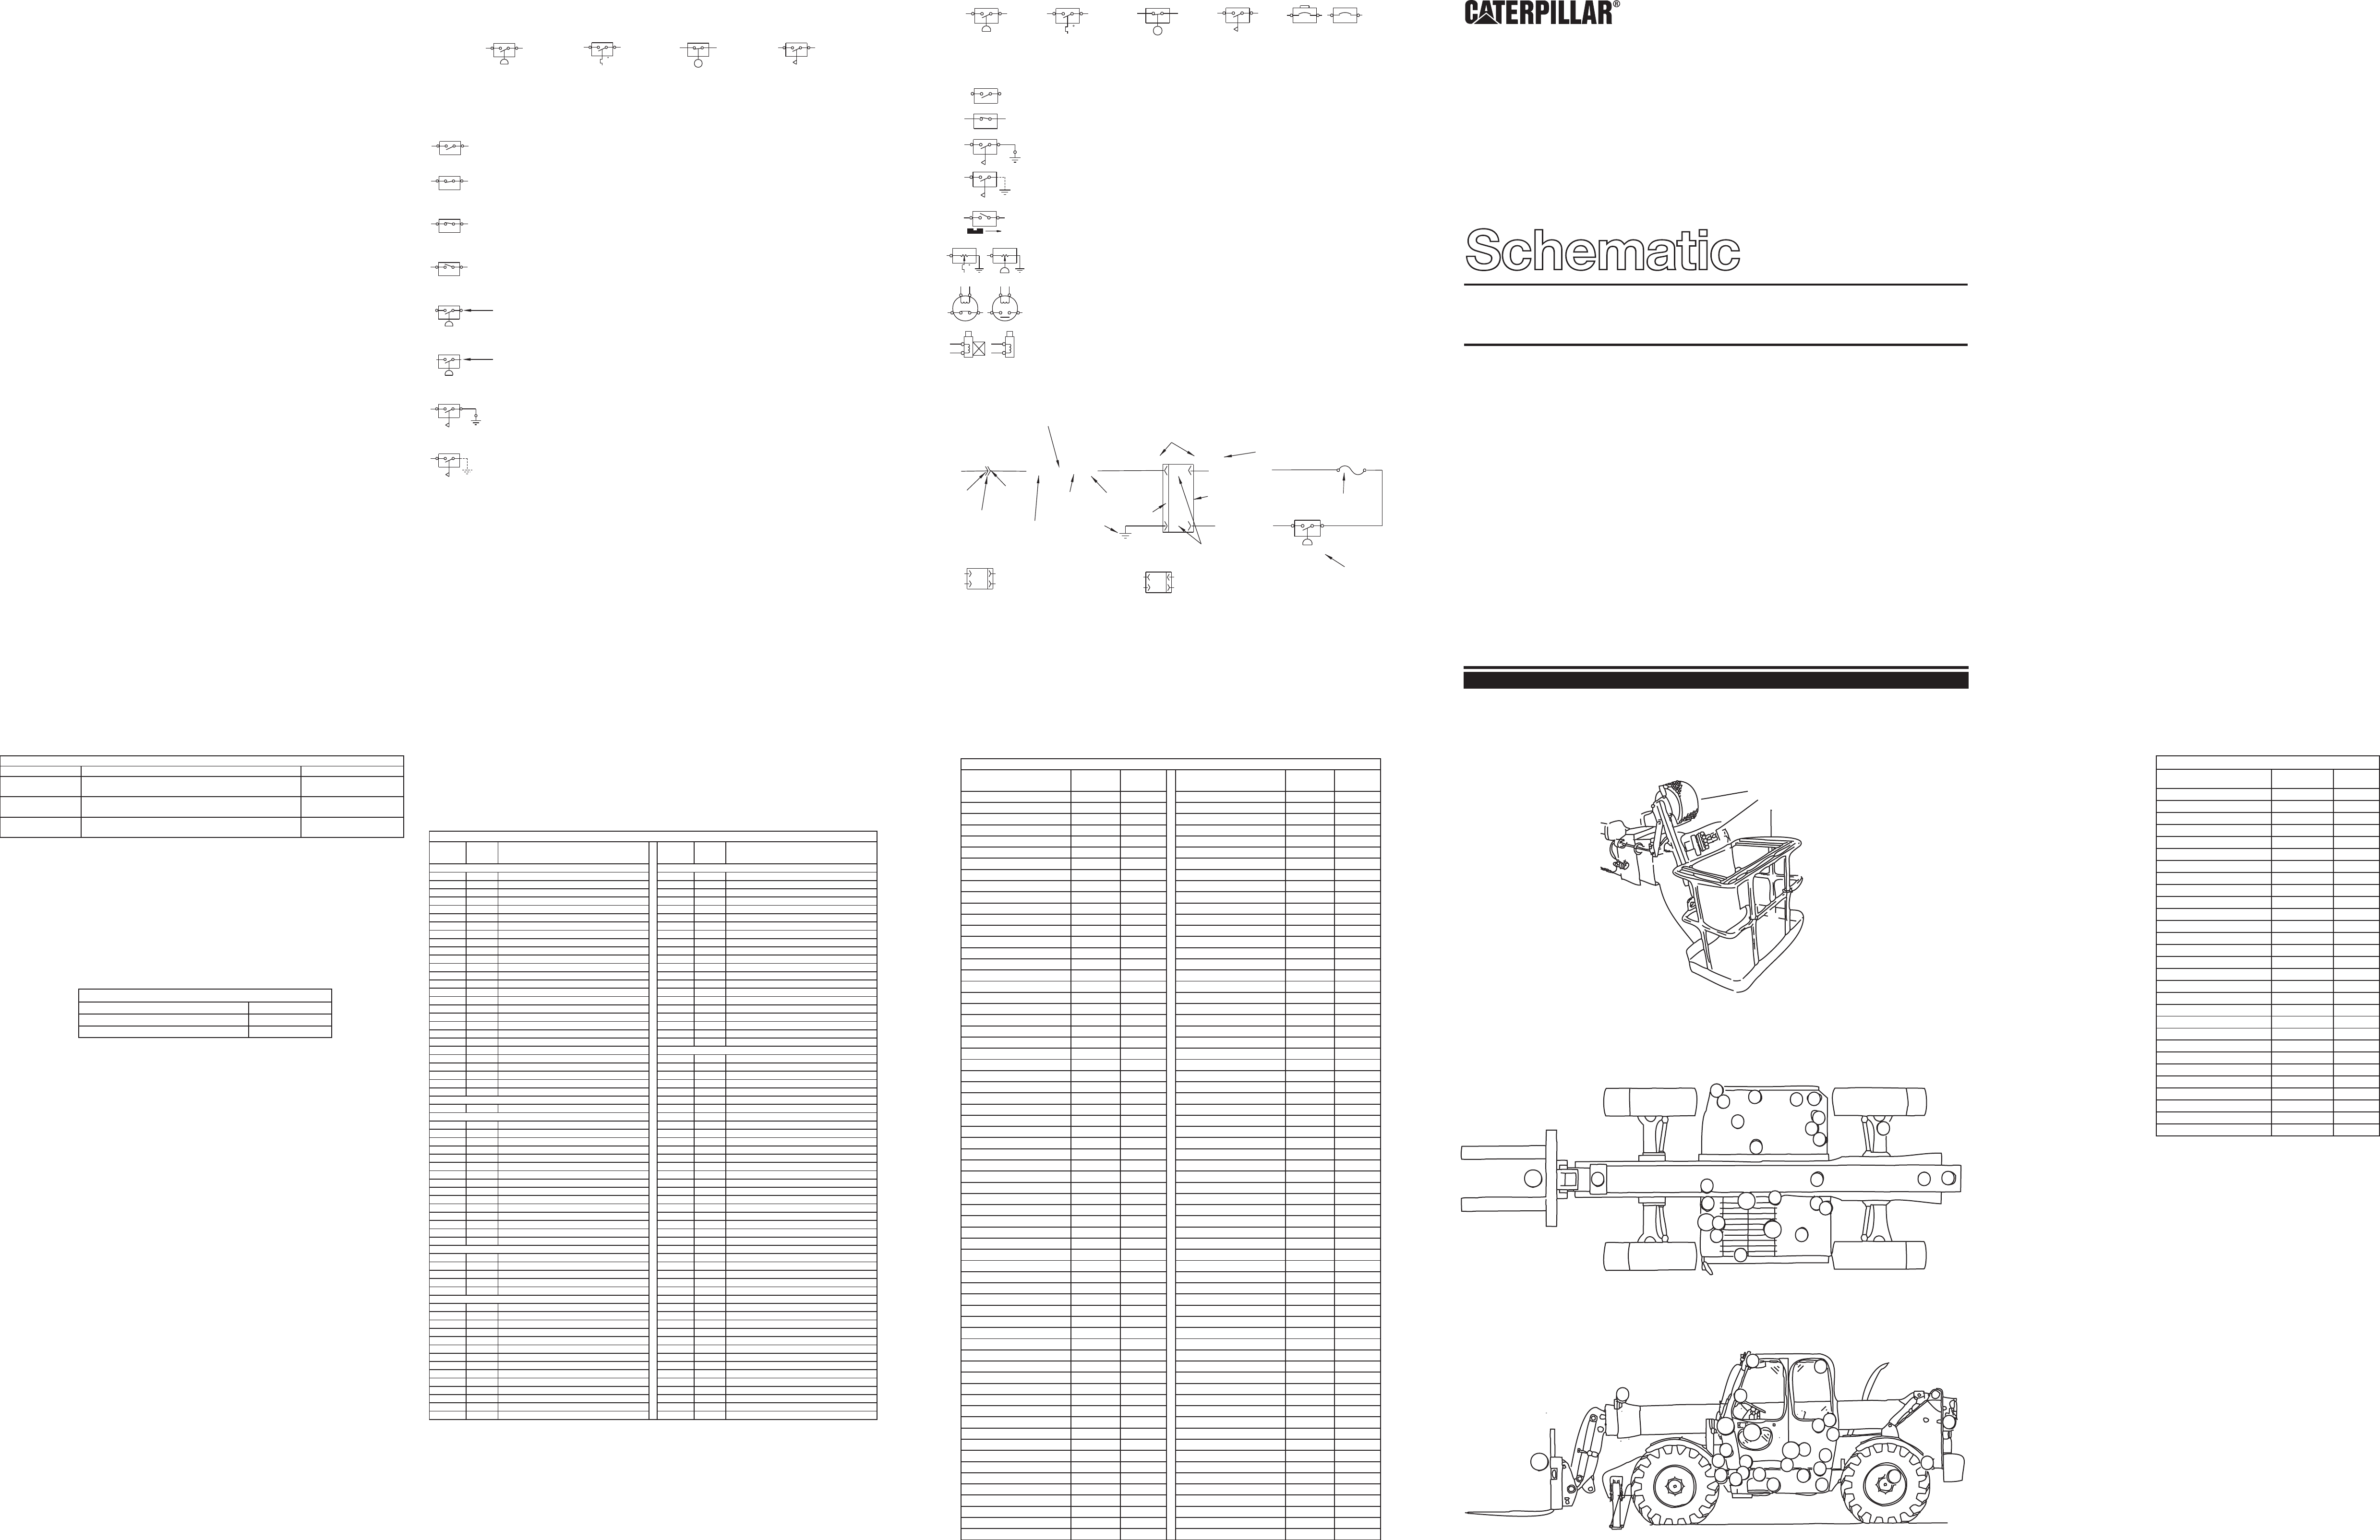 TH62, TH63, TH82, TH83 ELECTRICAL SCHEMATIC | CAT Machines Electrical  SchematicCAT Machines Electrical Schematic